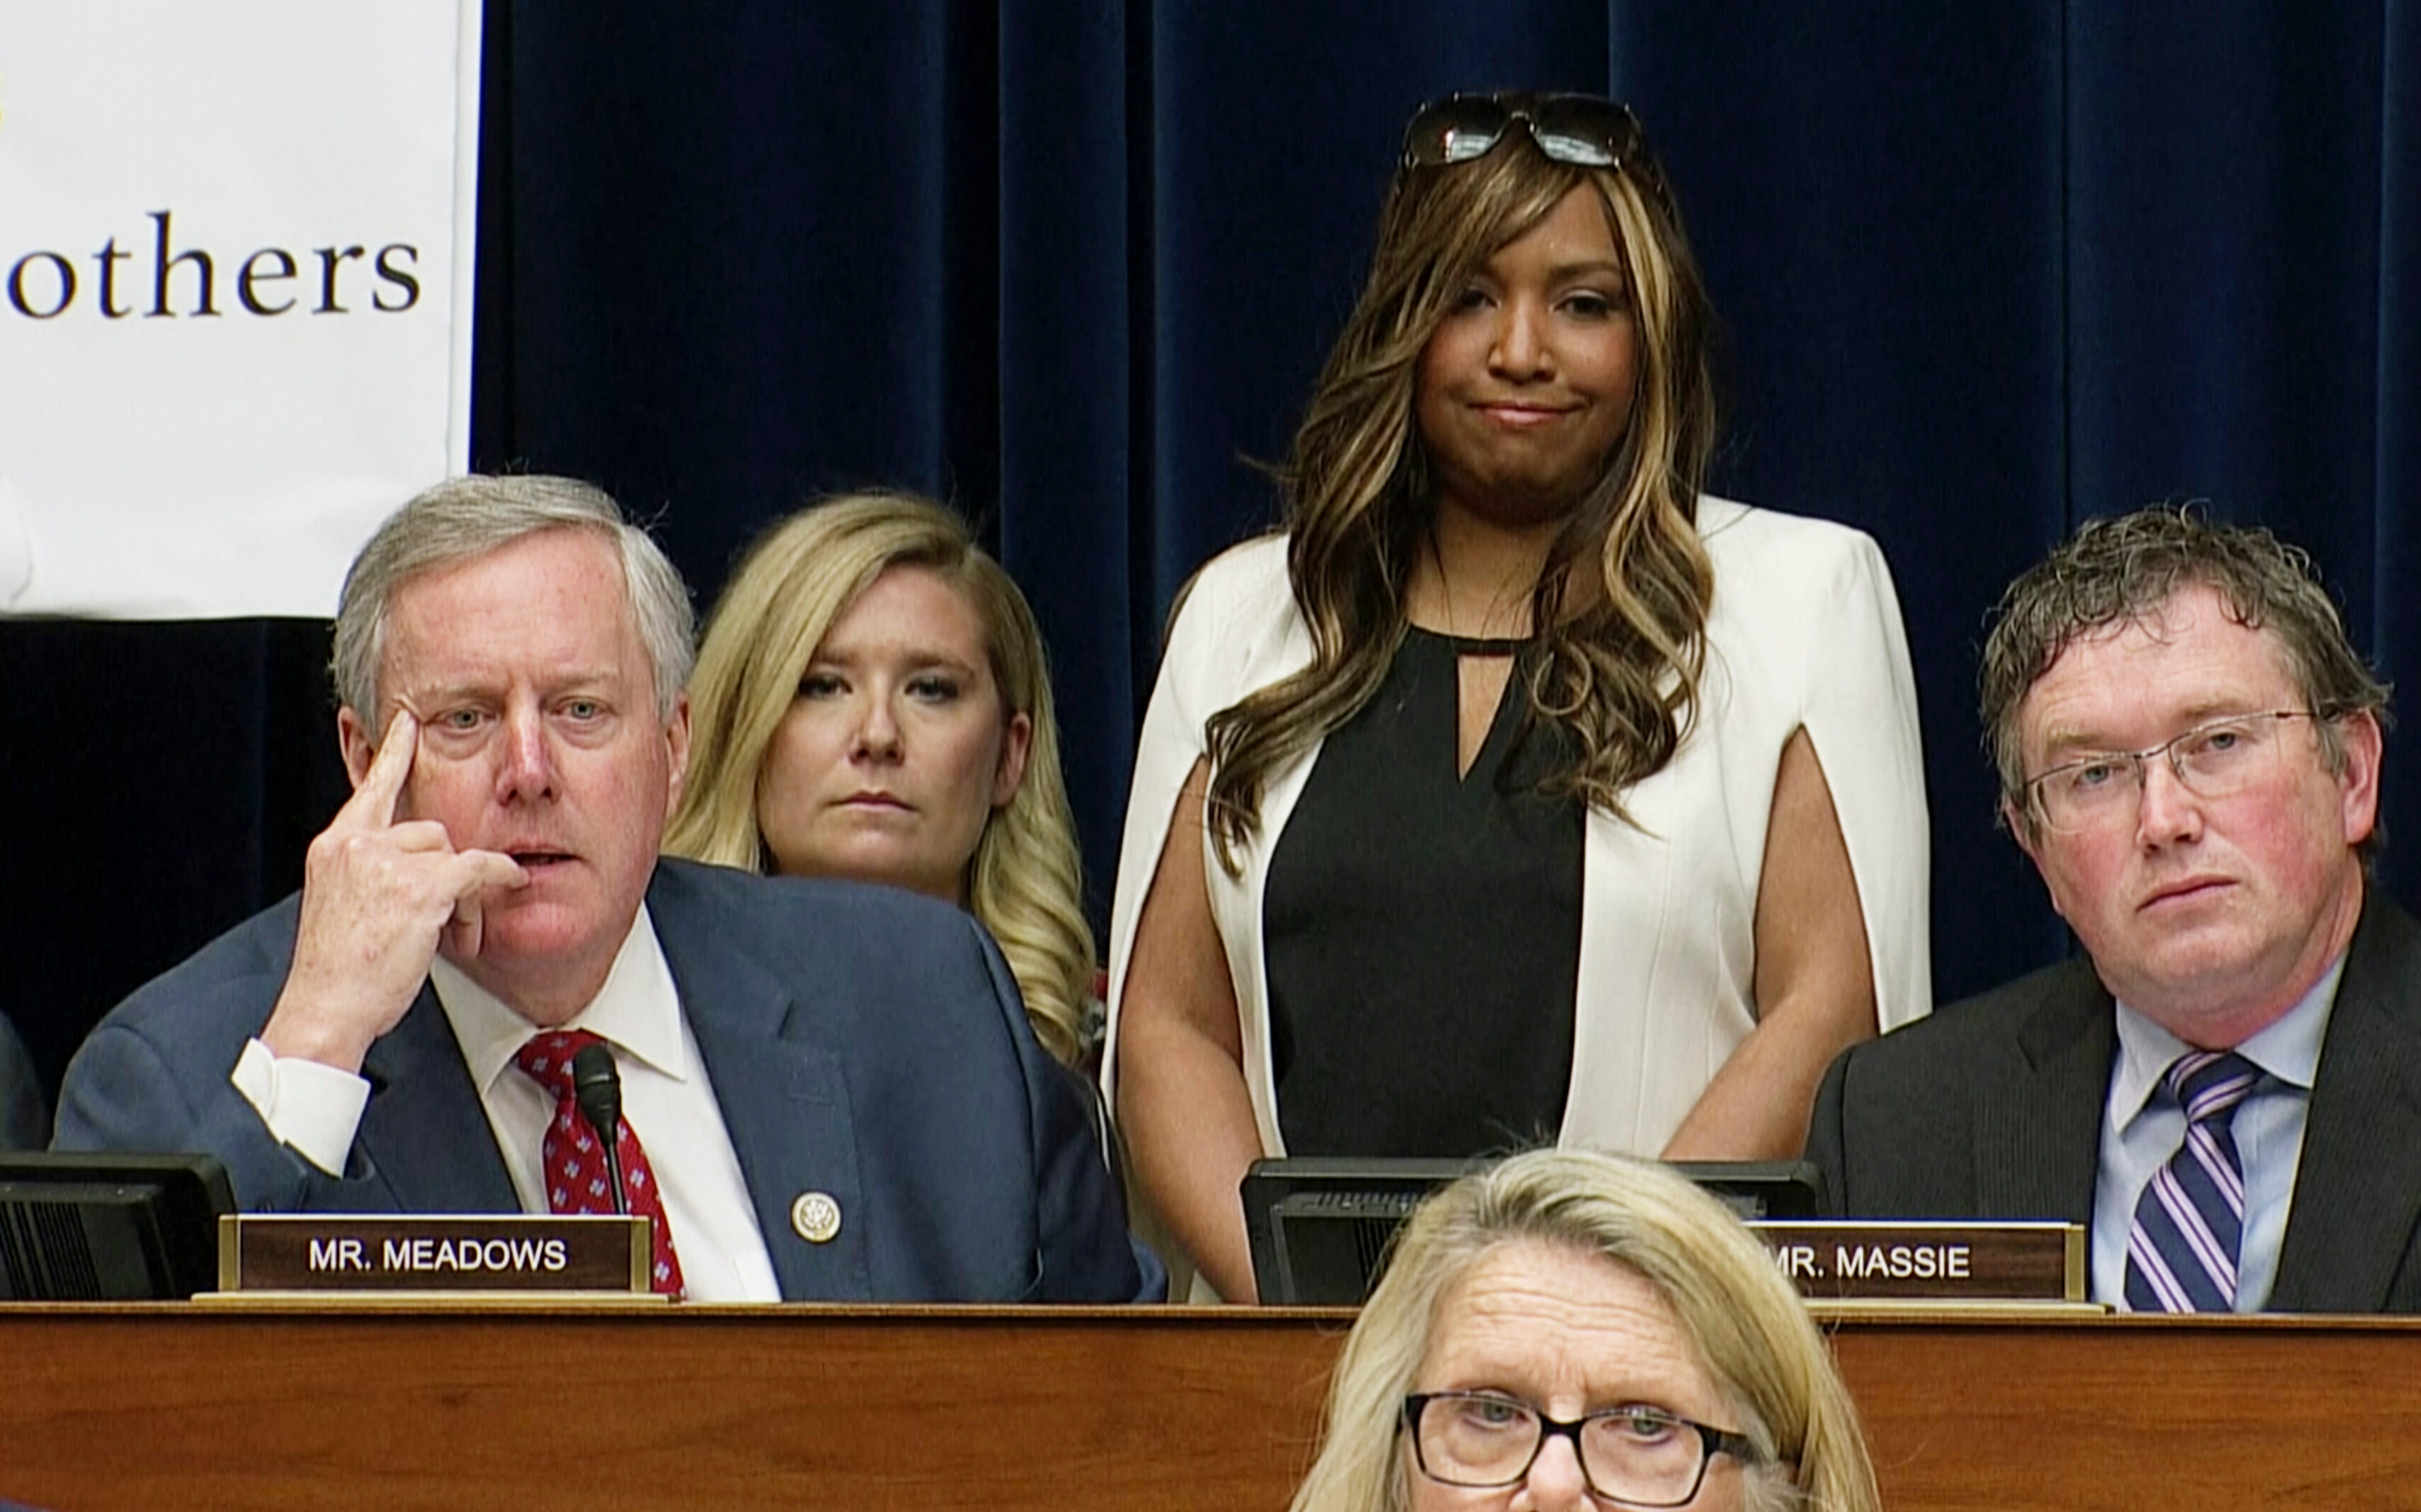 Mark Meadows put a black woman on display to show Trump is not a racist. Really?